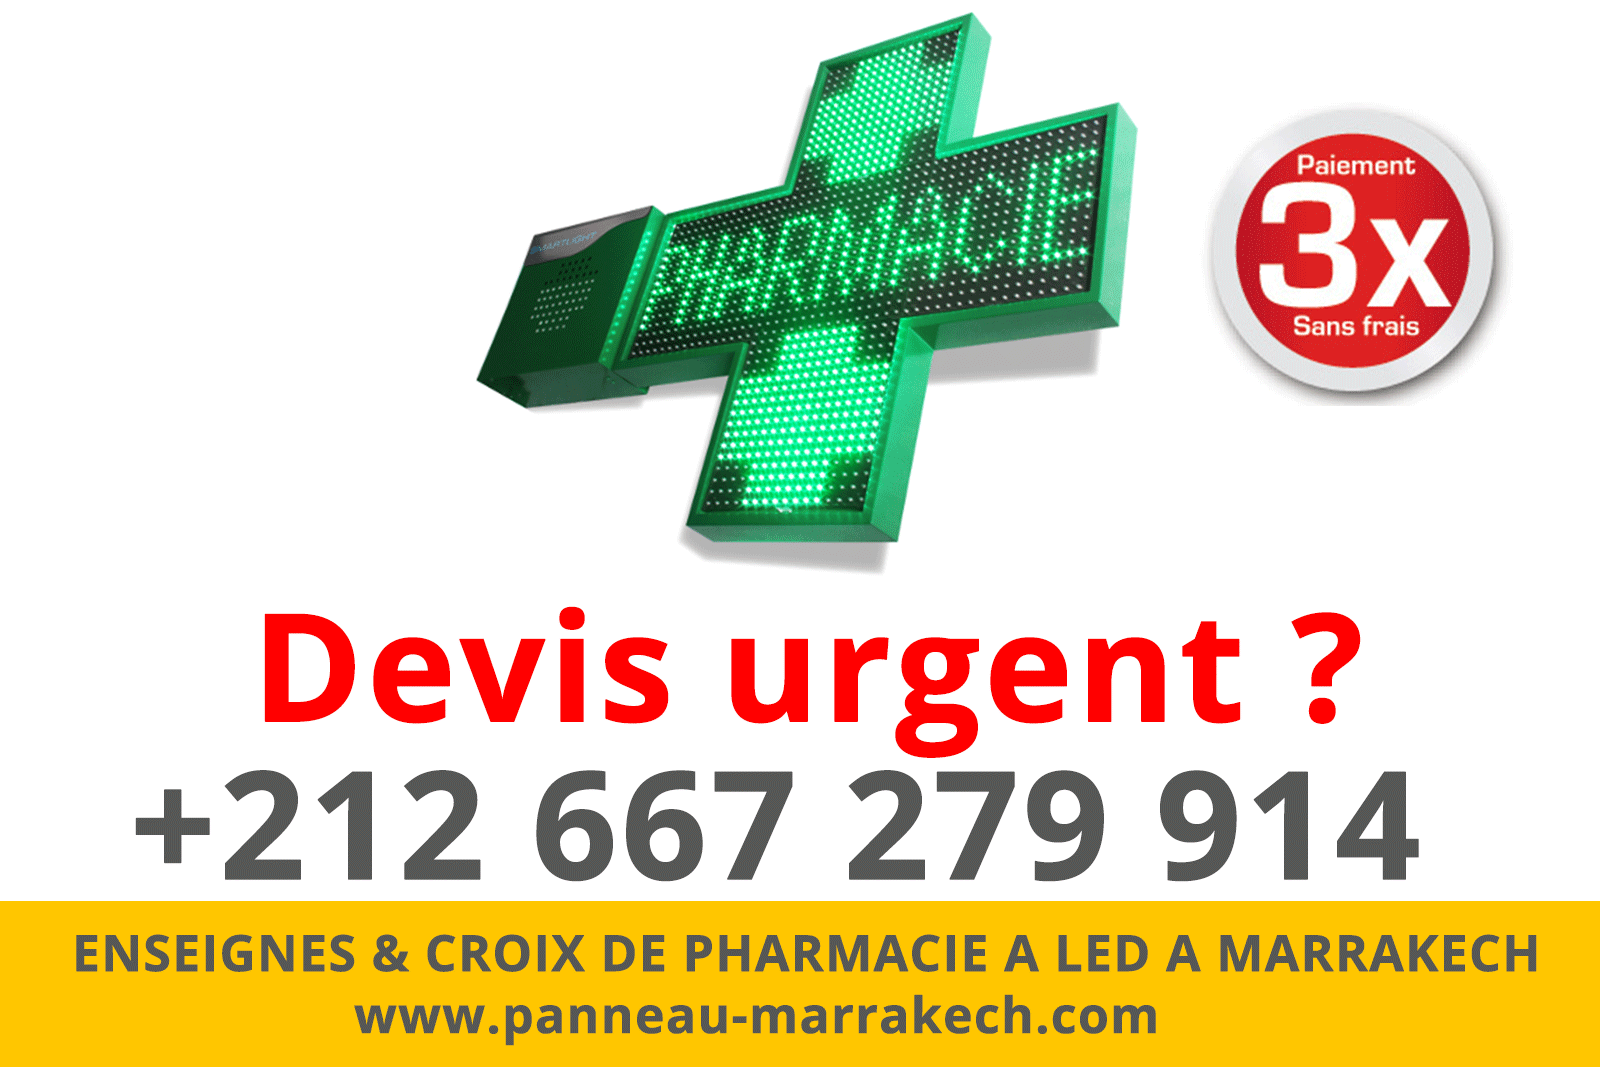 ENSEIGNES & CROIX DE PHARMACIE A LED A MARRAKECH habillage facade pharmacie marrakech